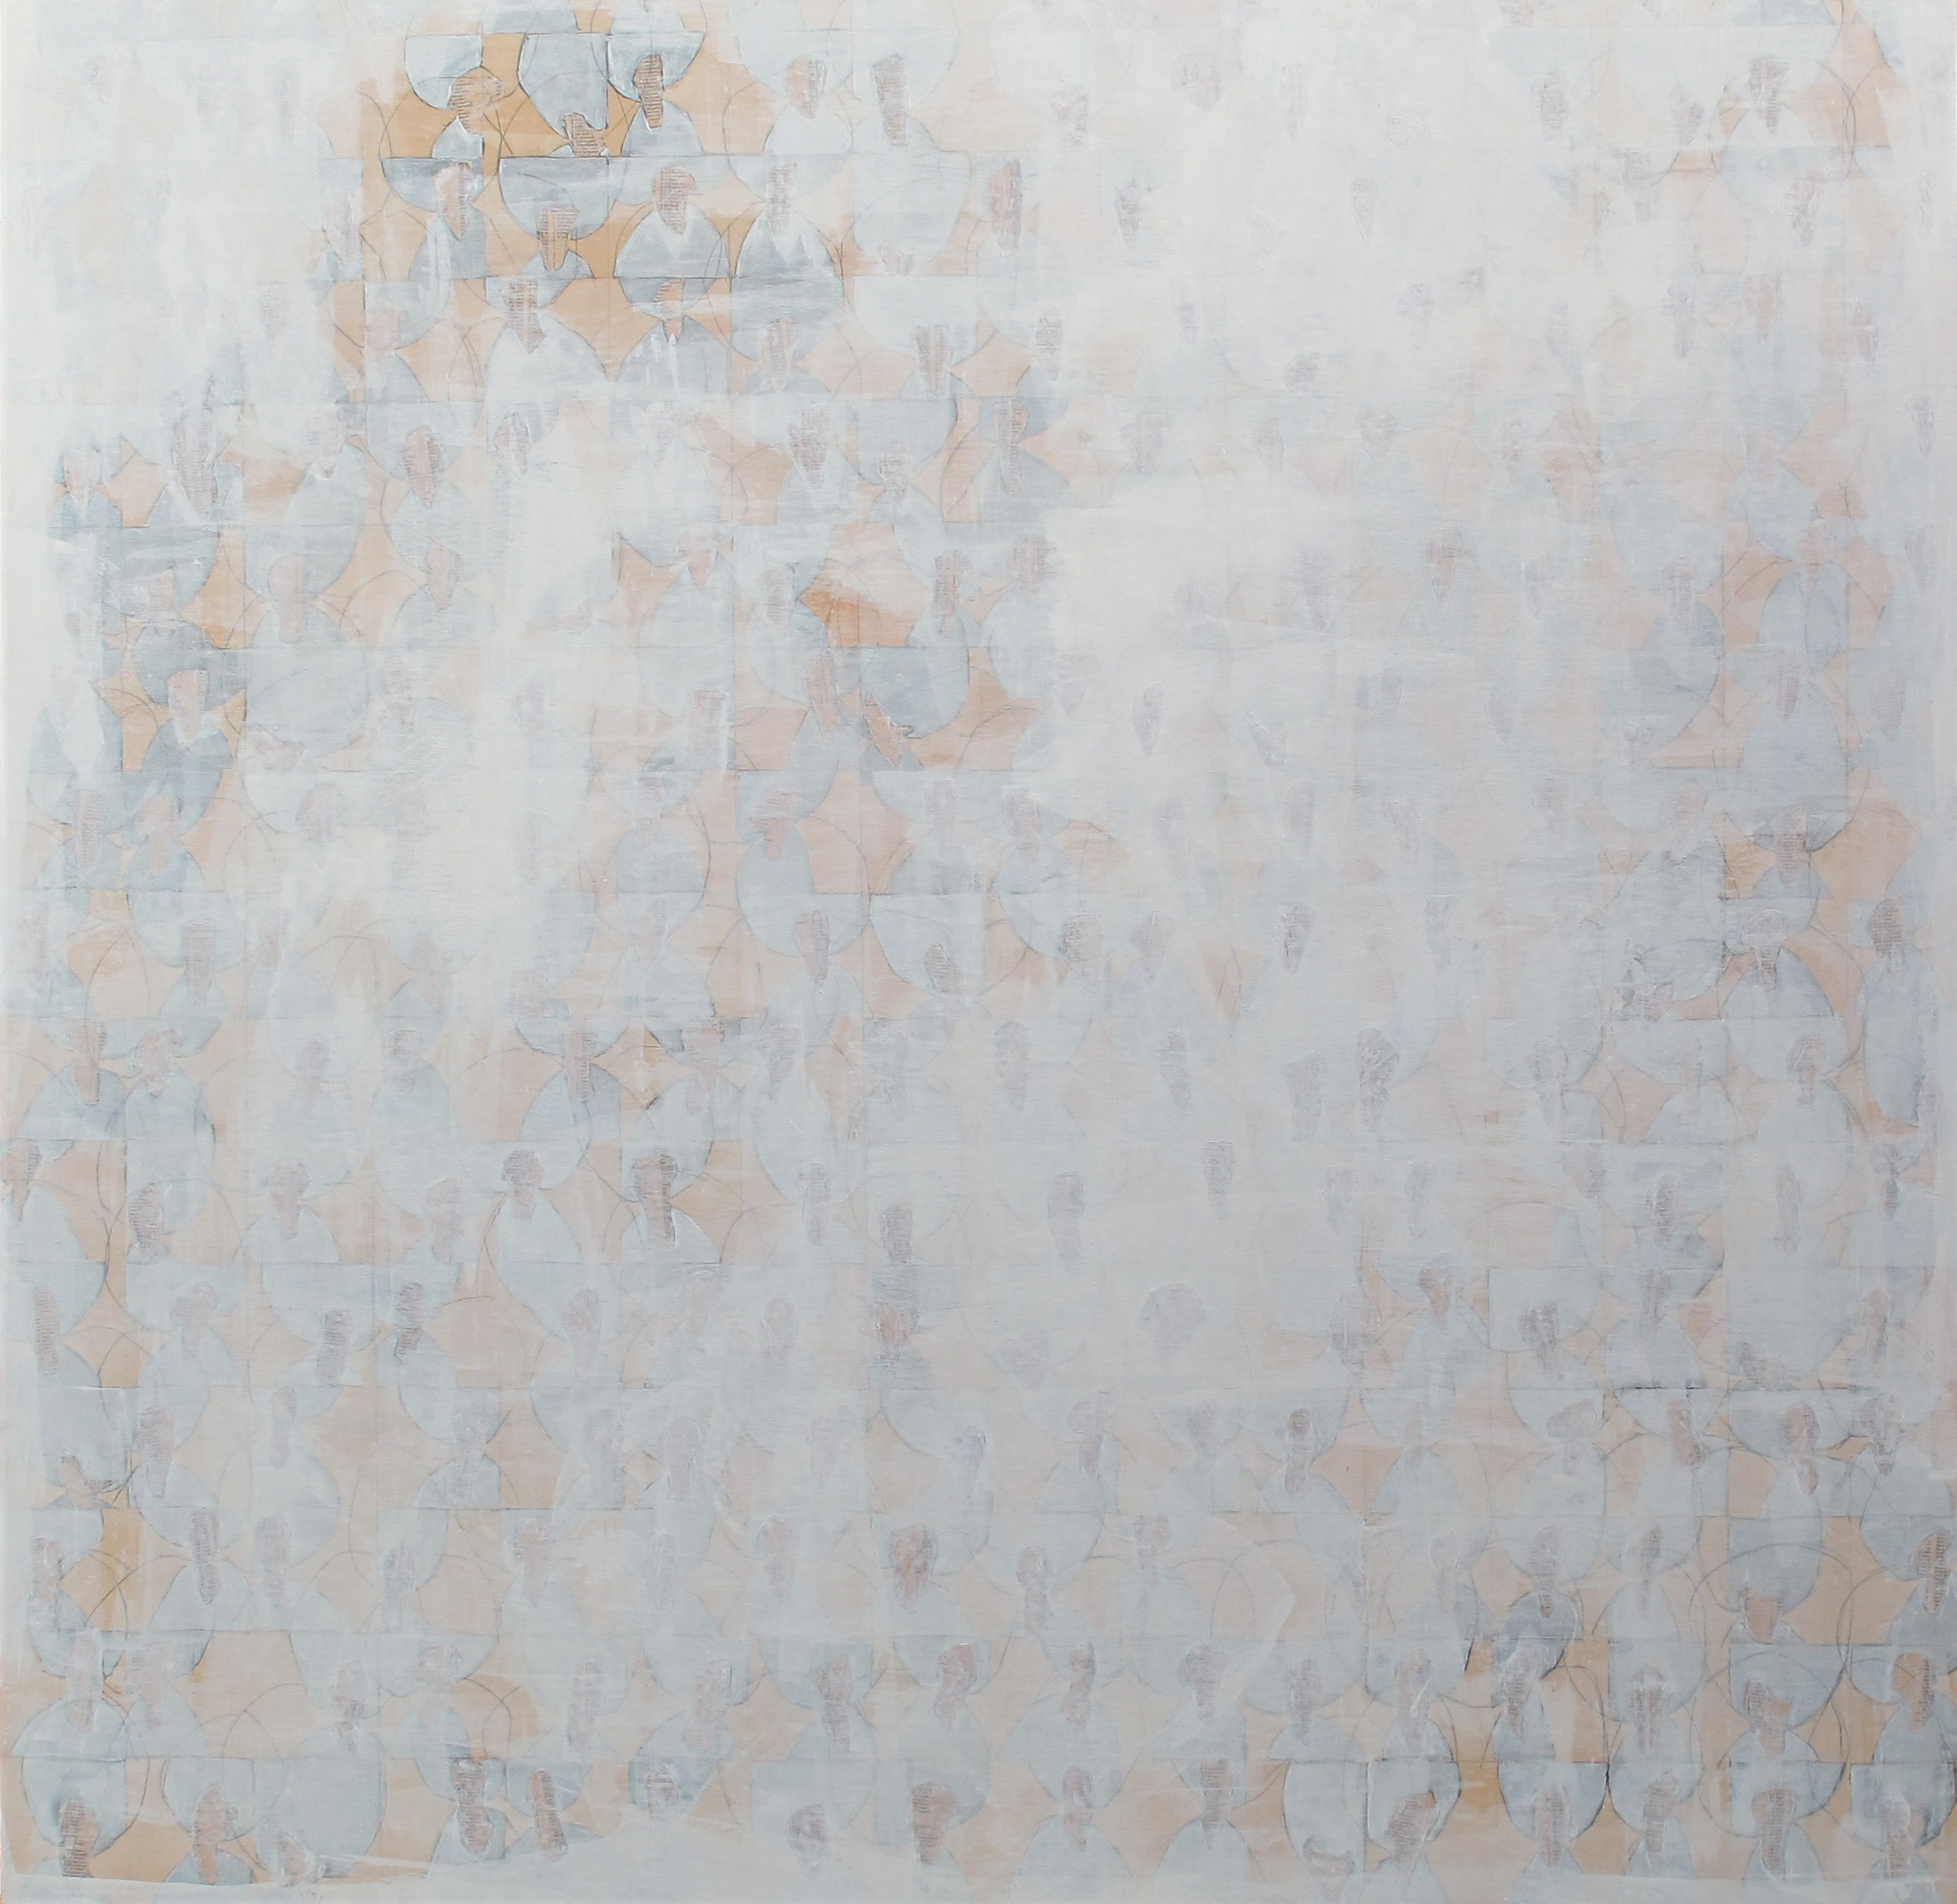 Untitled (Whiteout) , 2014-15, 48 x 48 inches, mixed media on wood